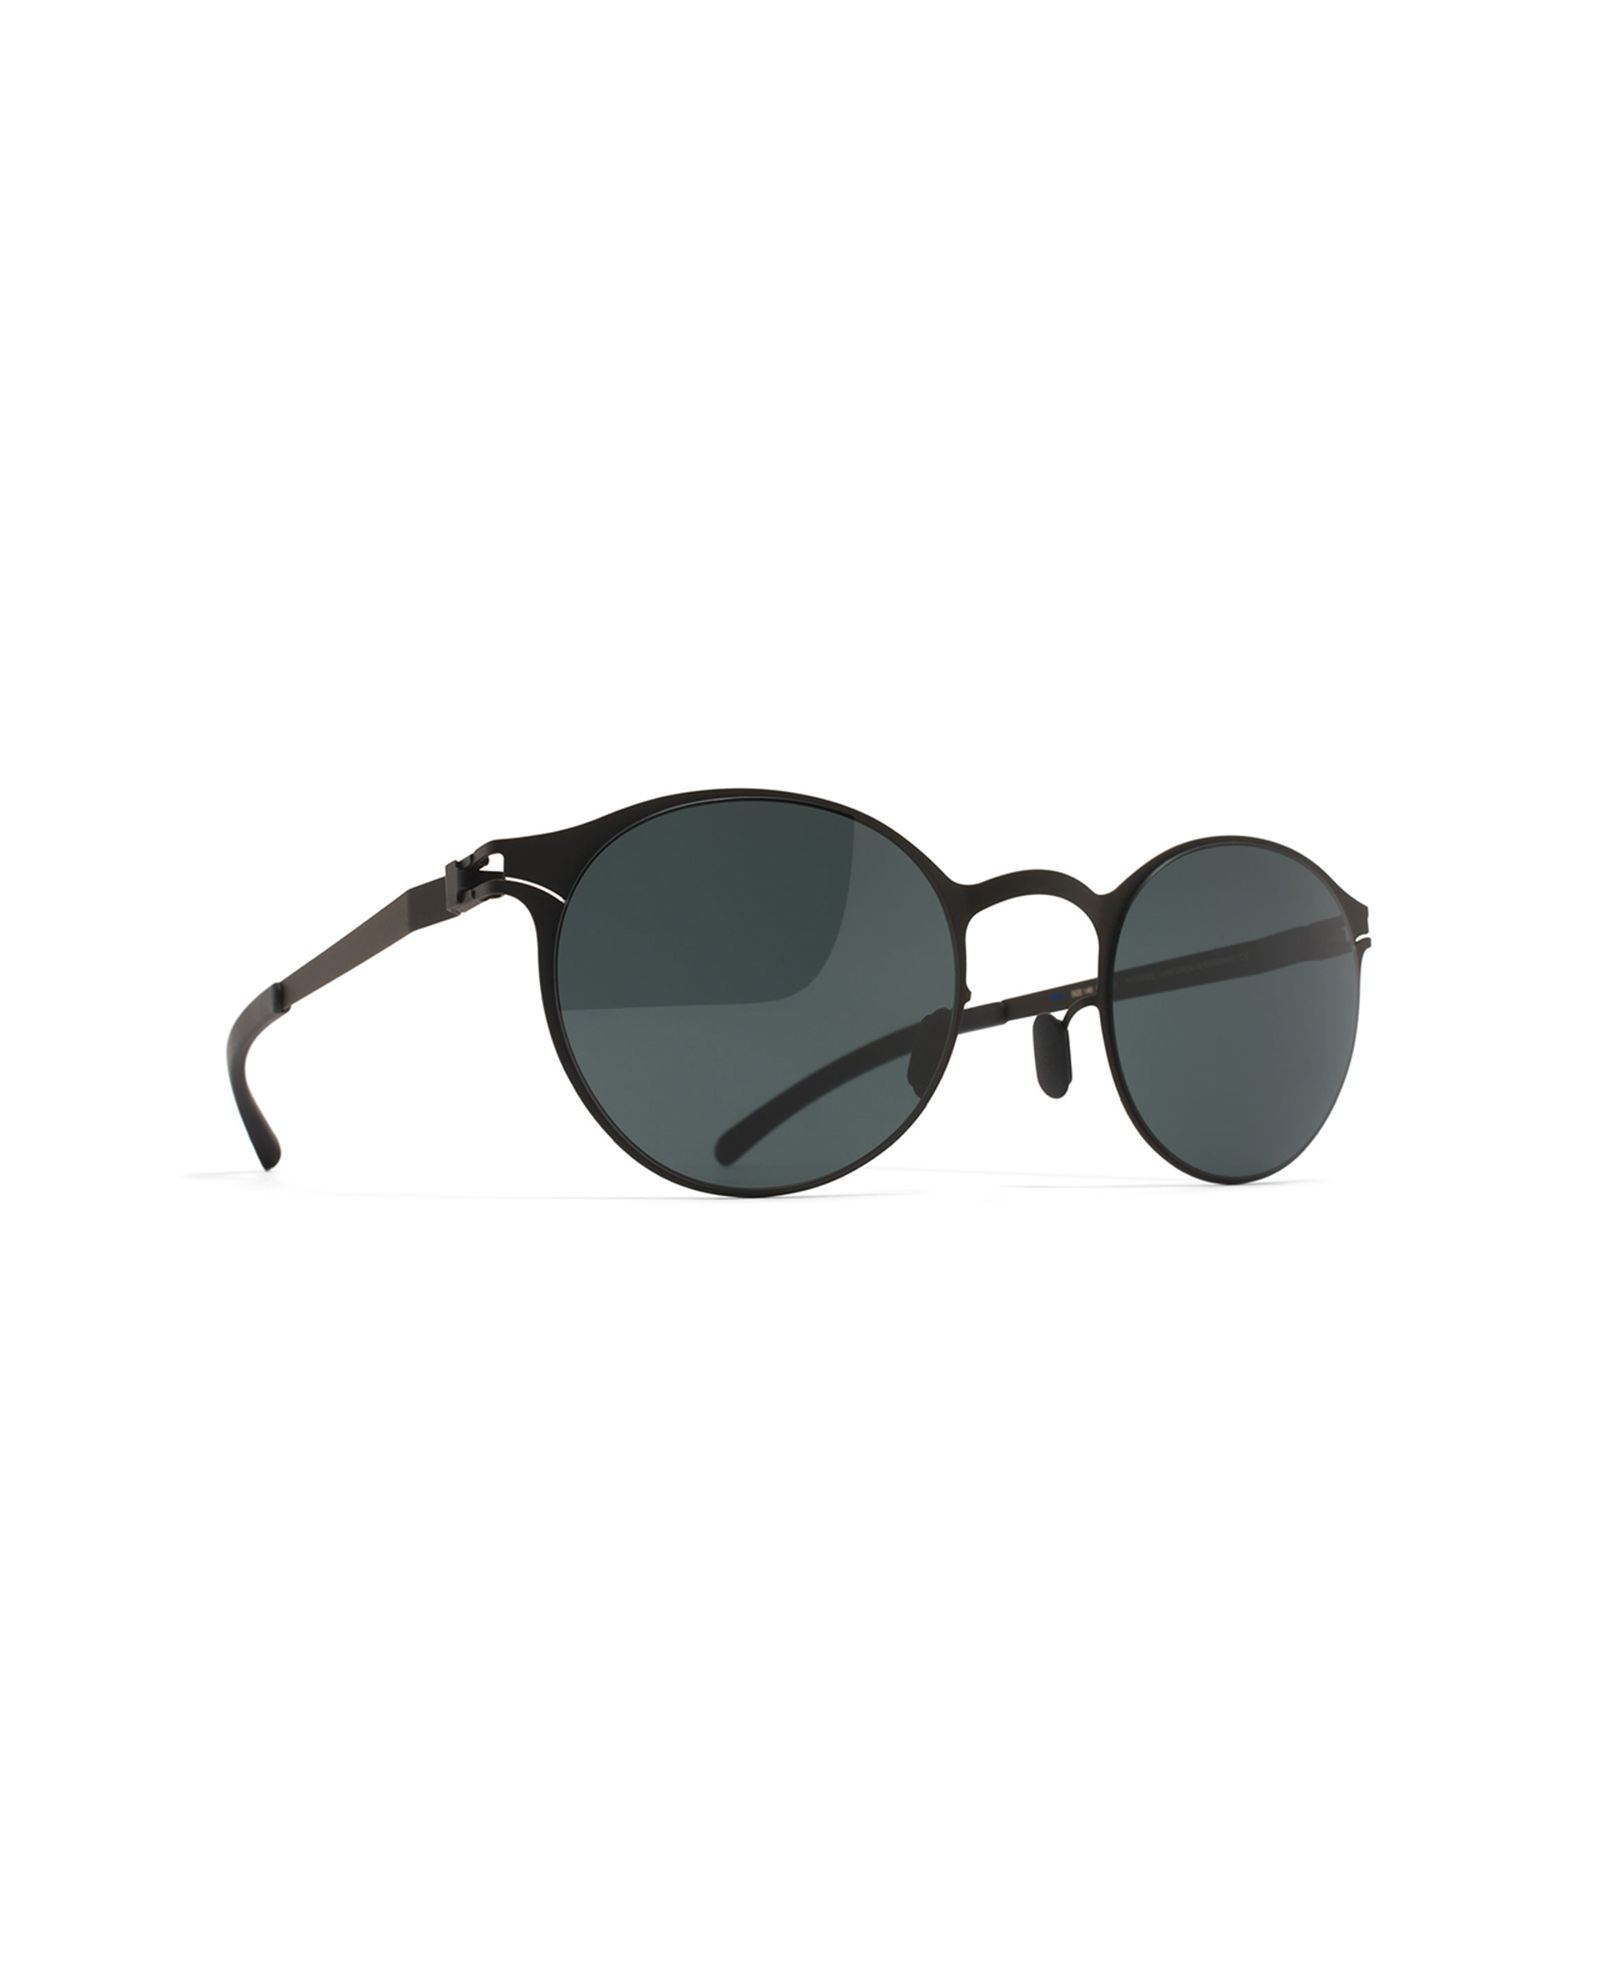 https://www.polydoruoptika.gr/wp-content/uploads/2018/01/mykita-no1-sun-junis-black-my-black-polarised-1.jpg